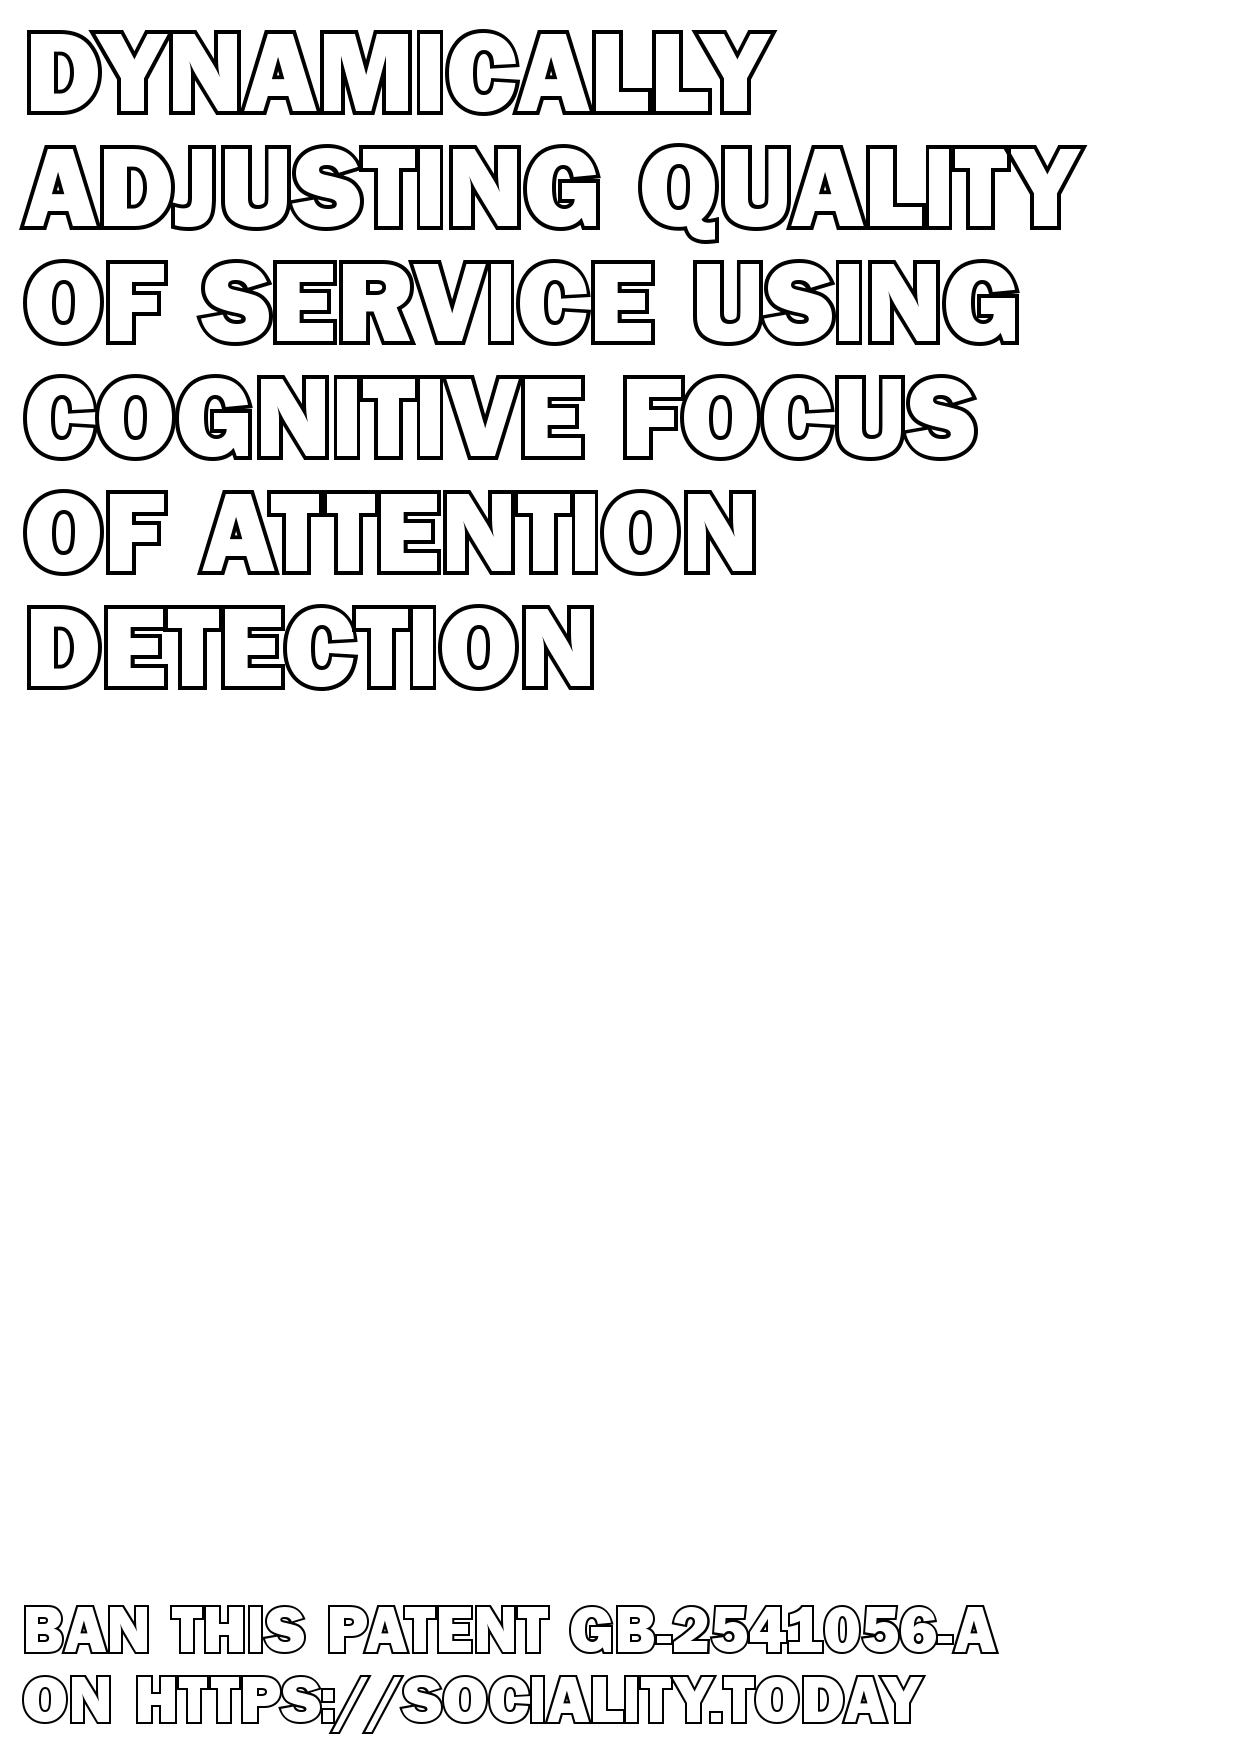 Dynamically adjusting quality of service using cognitive focus of attention detection  - GB-2541056-A